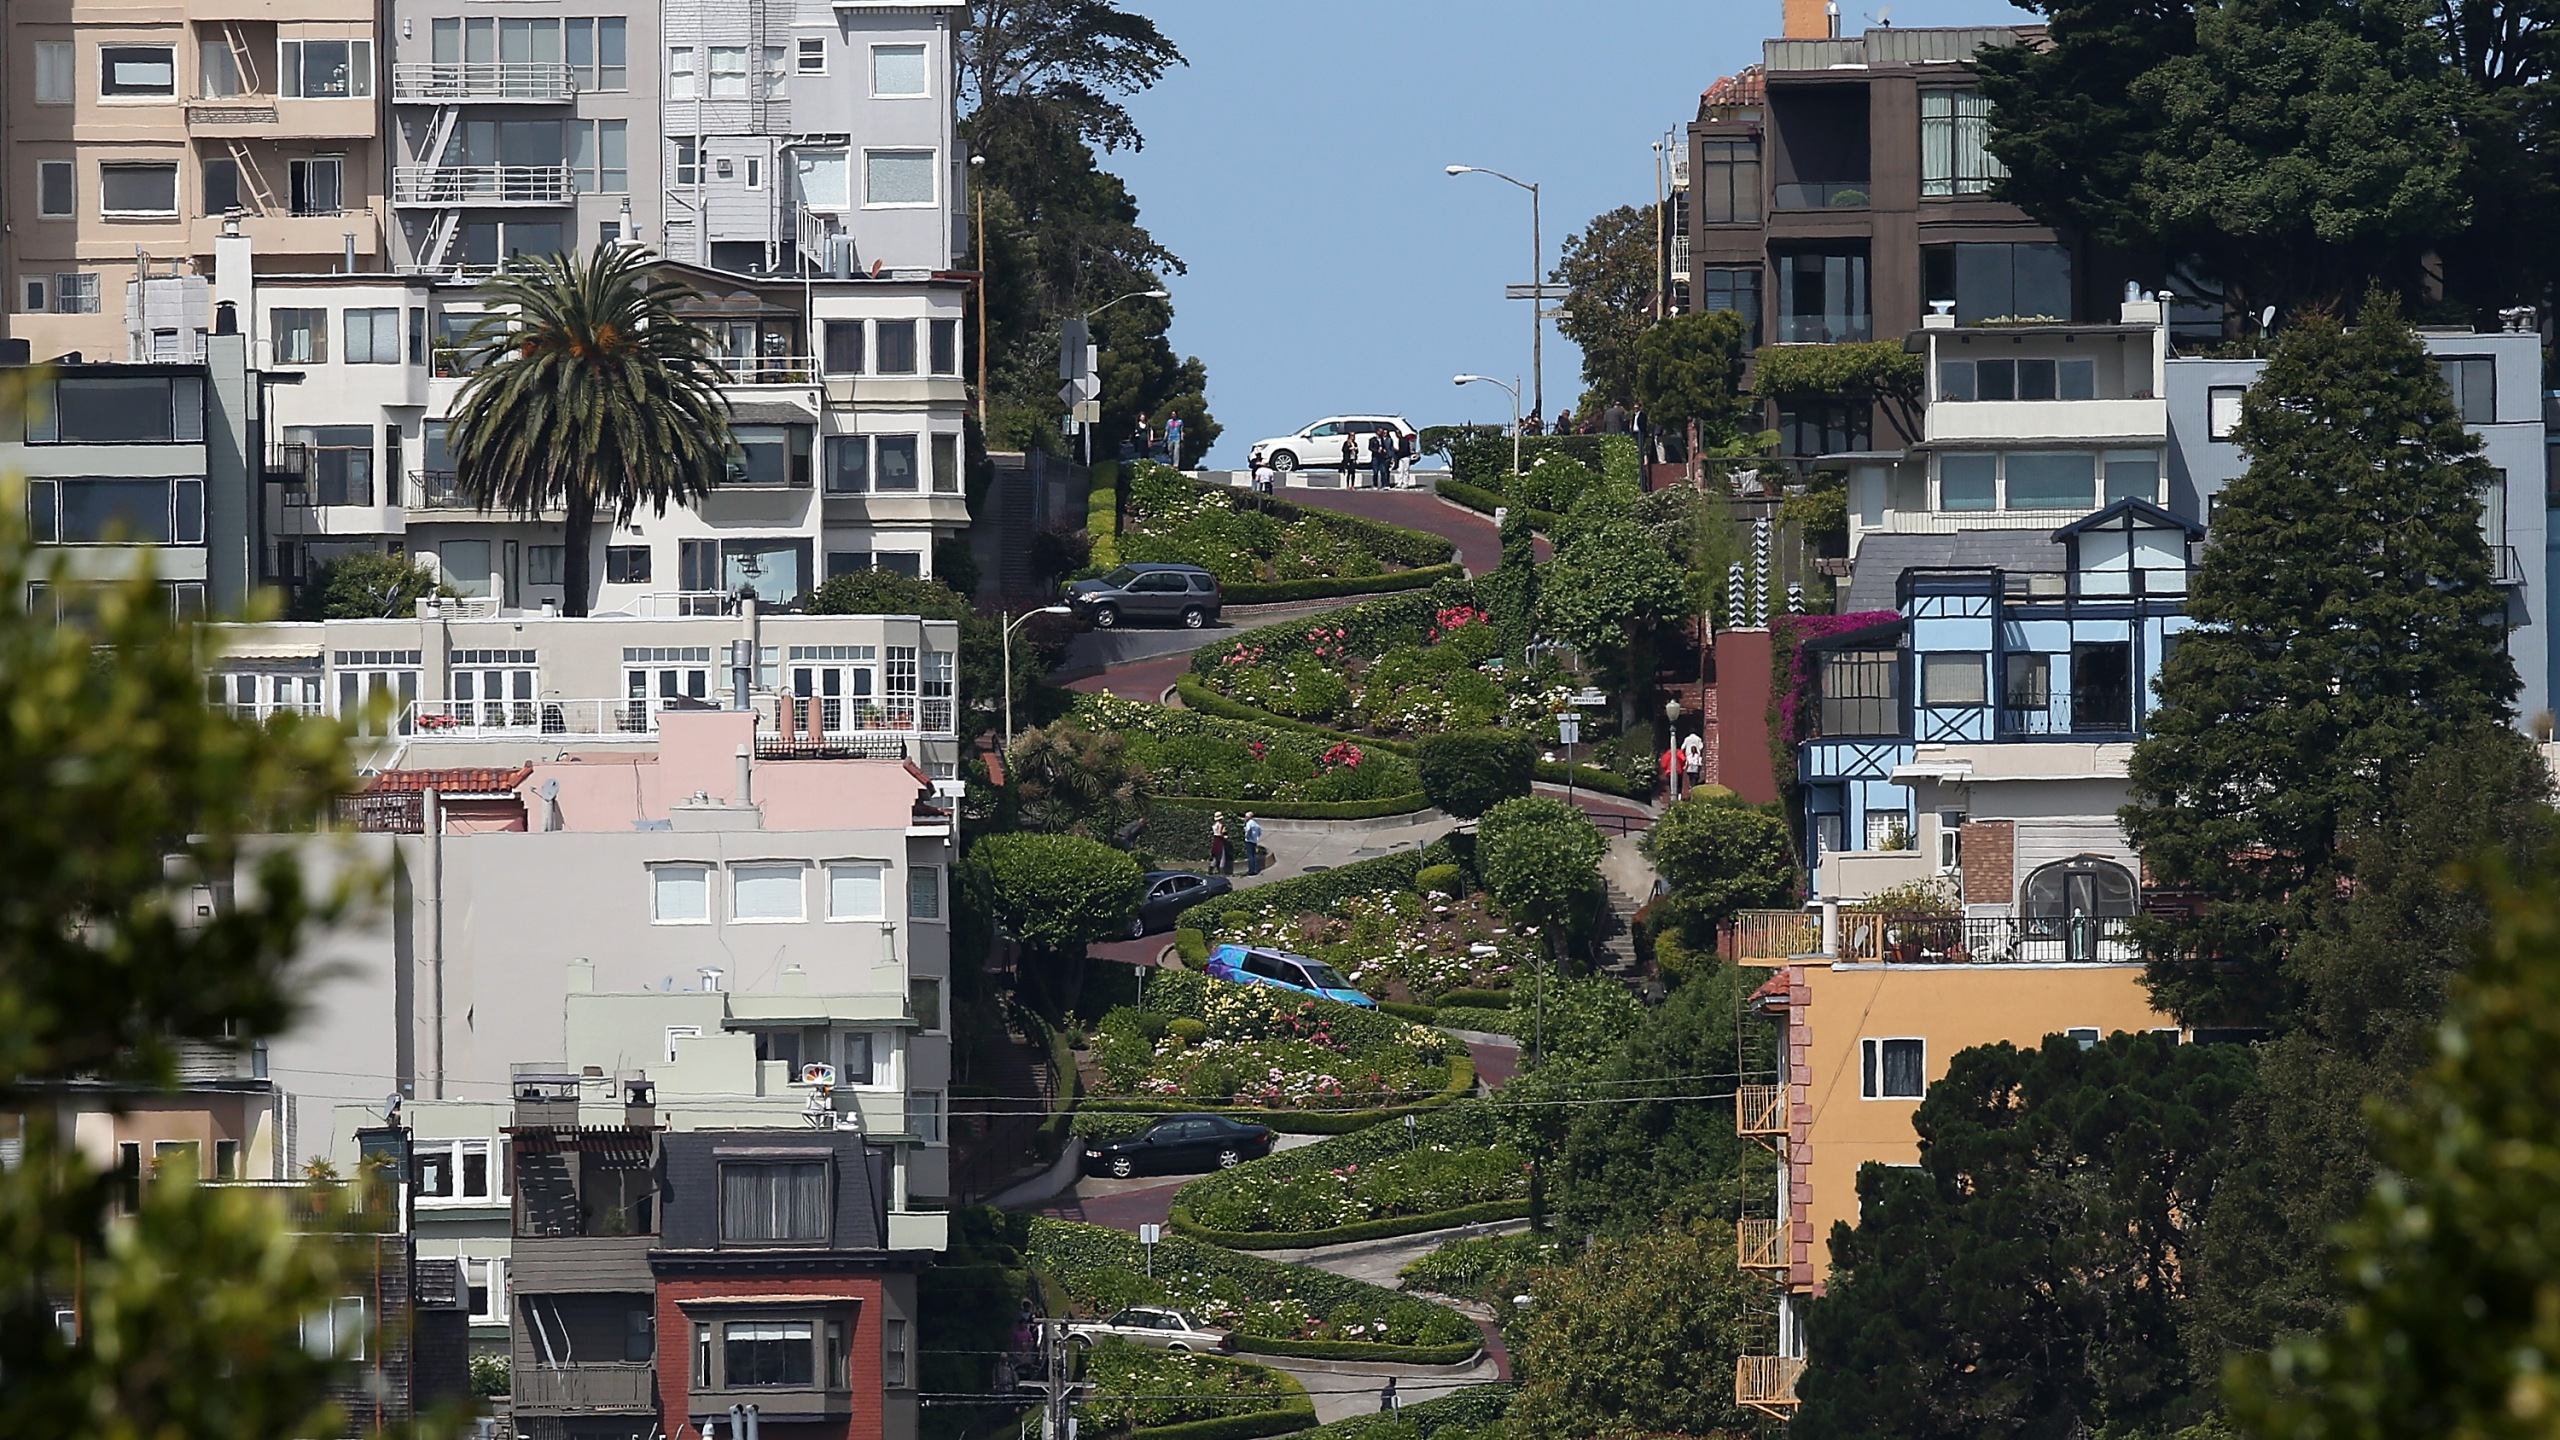 A view of Lombard Street on May 20, 2014 in San Francisco, California. (Credit: Justin Sullivan/Getty Images)